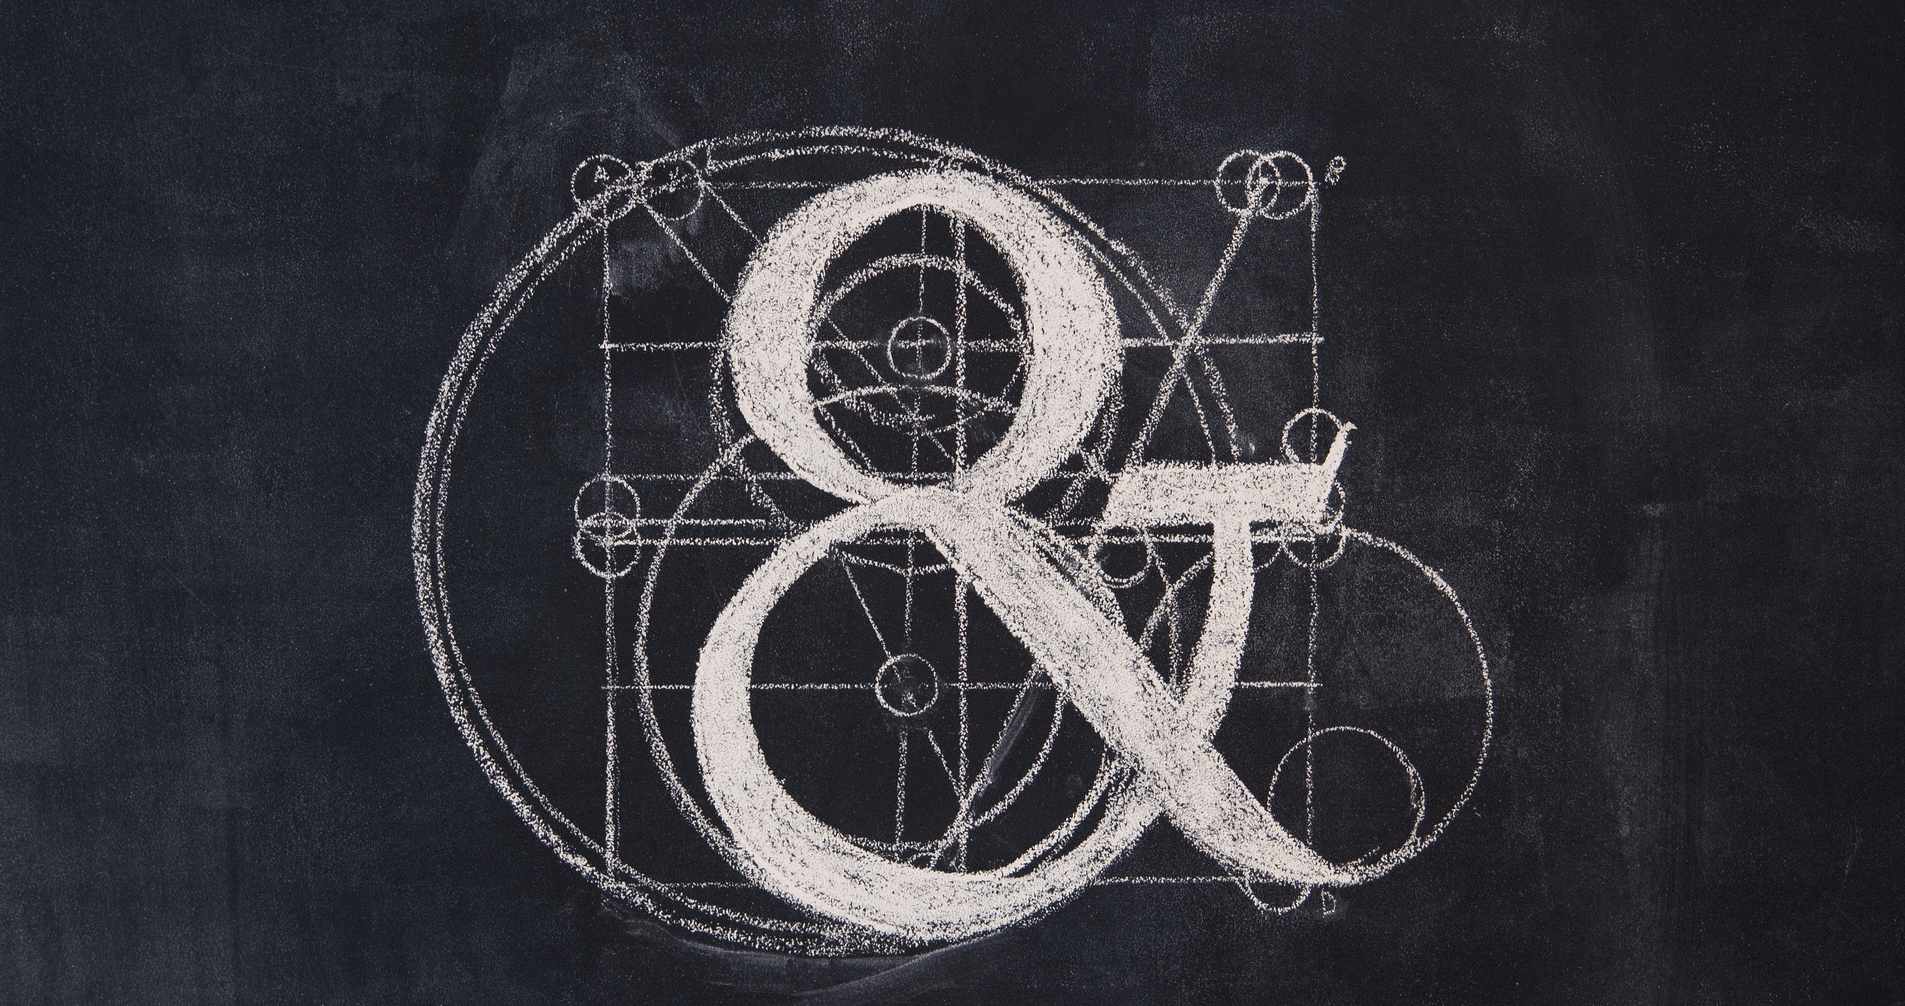 Anatomy of an Ampersand, a Vitruvian sketch of an ampersand